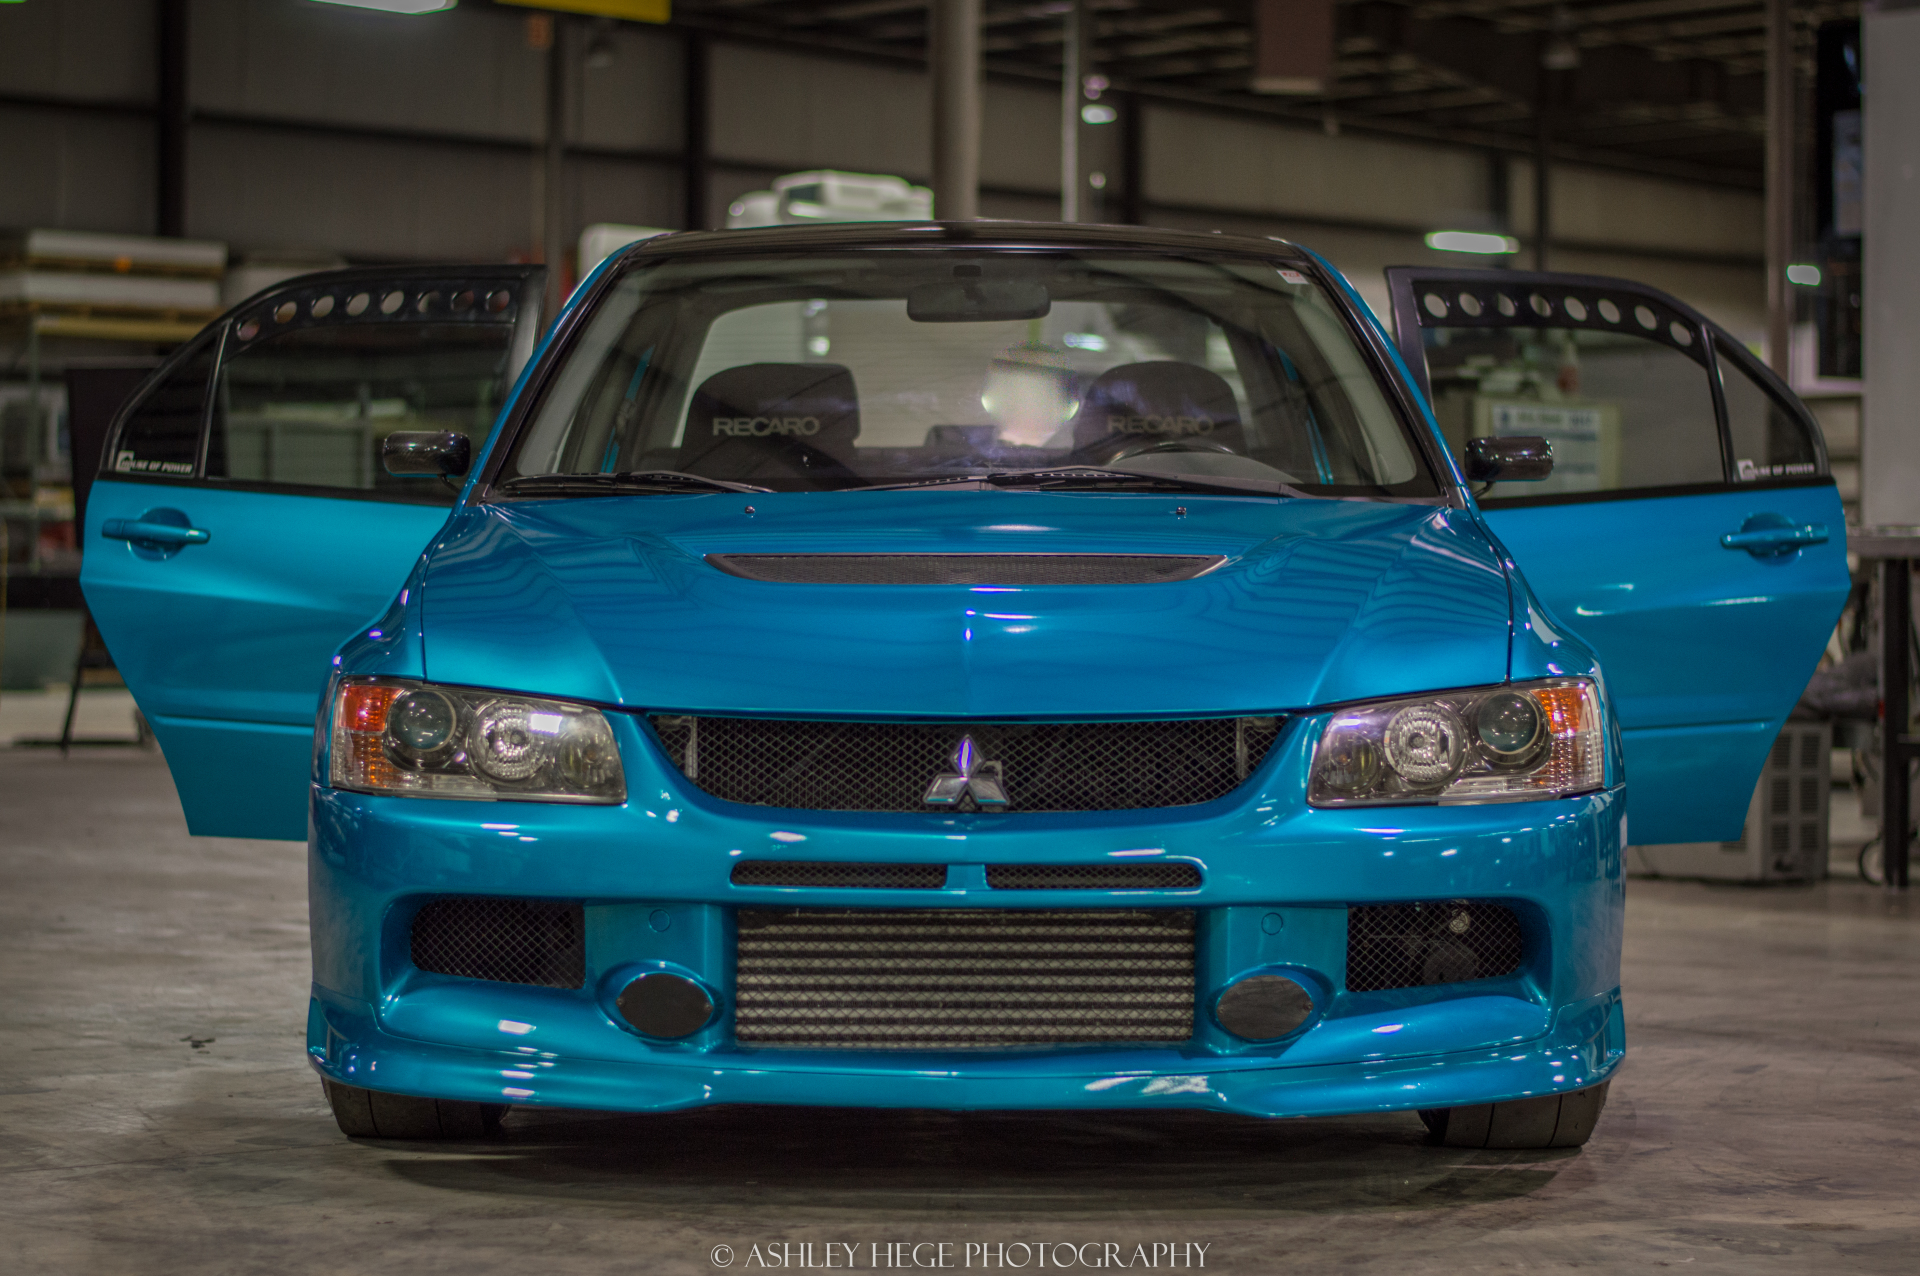 Full wrap in Atomic Teal on this Evo 9